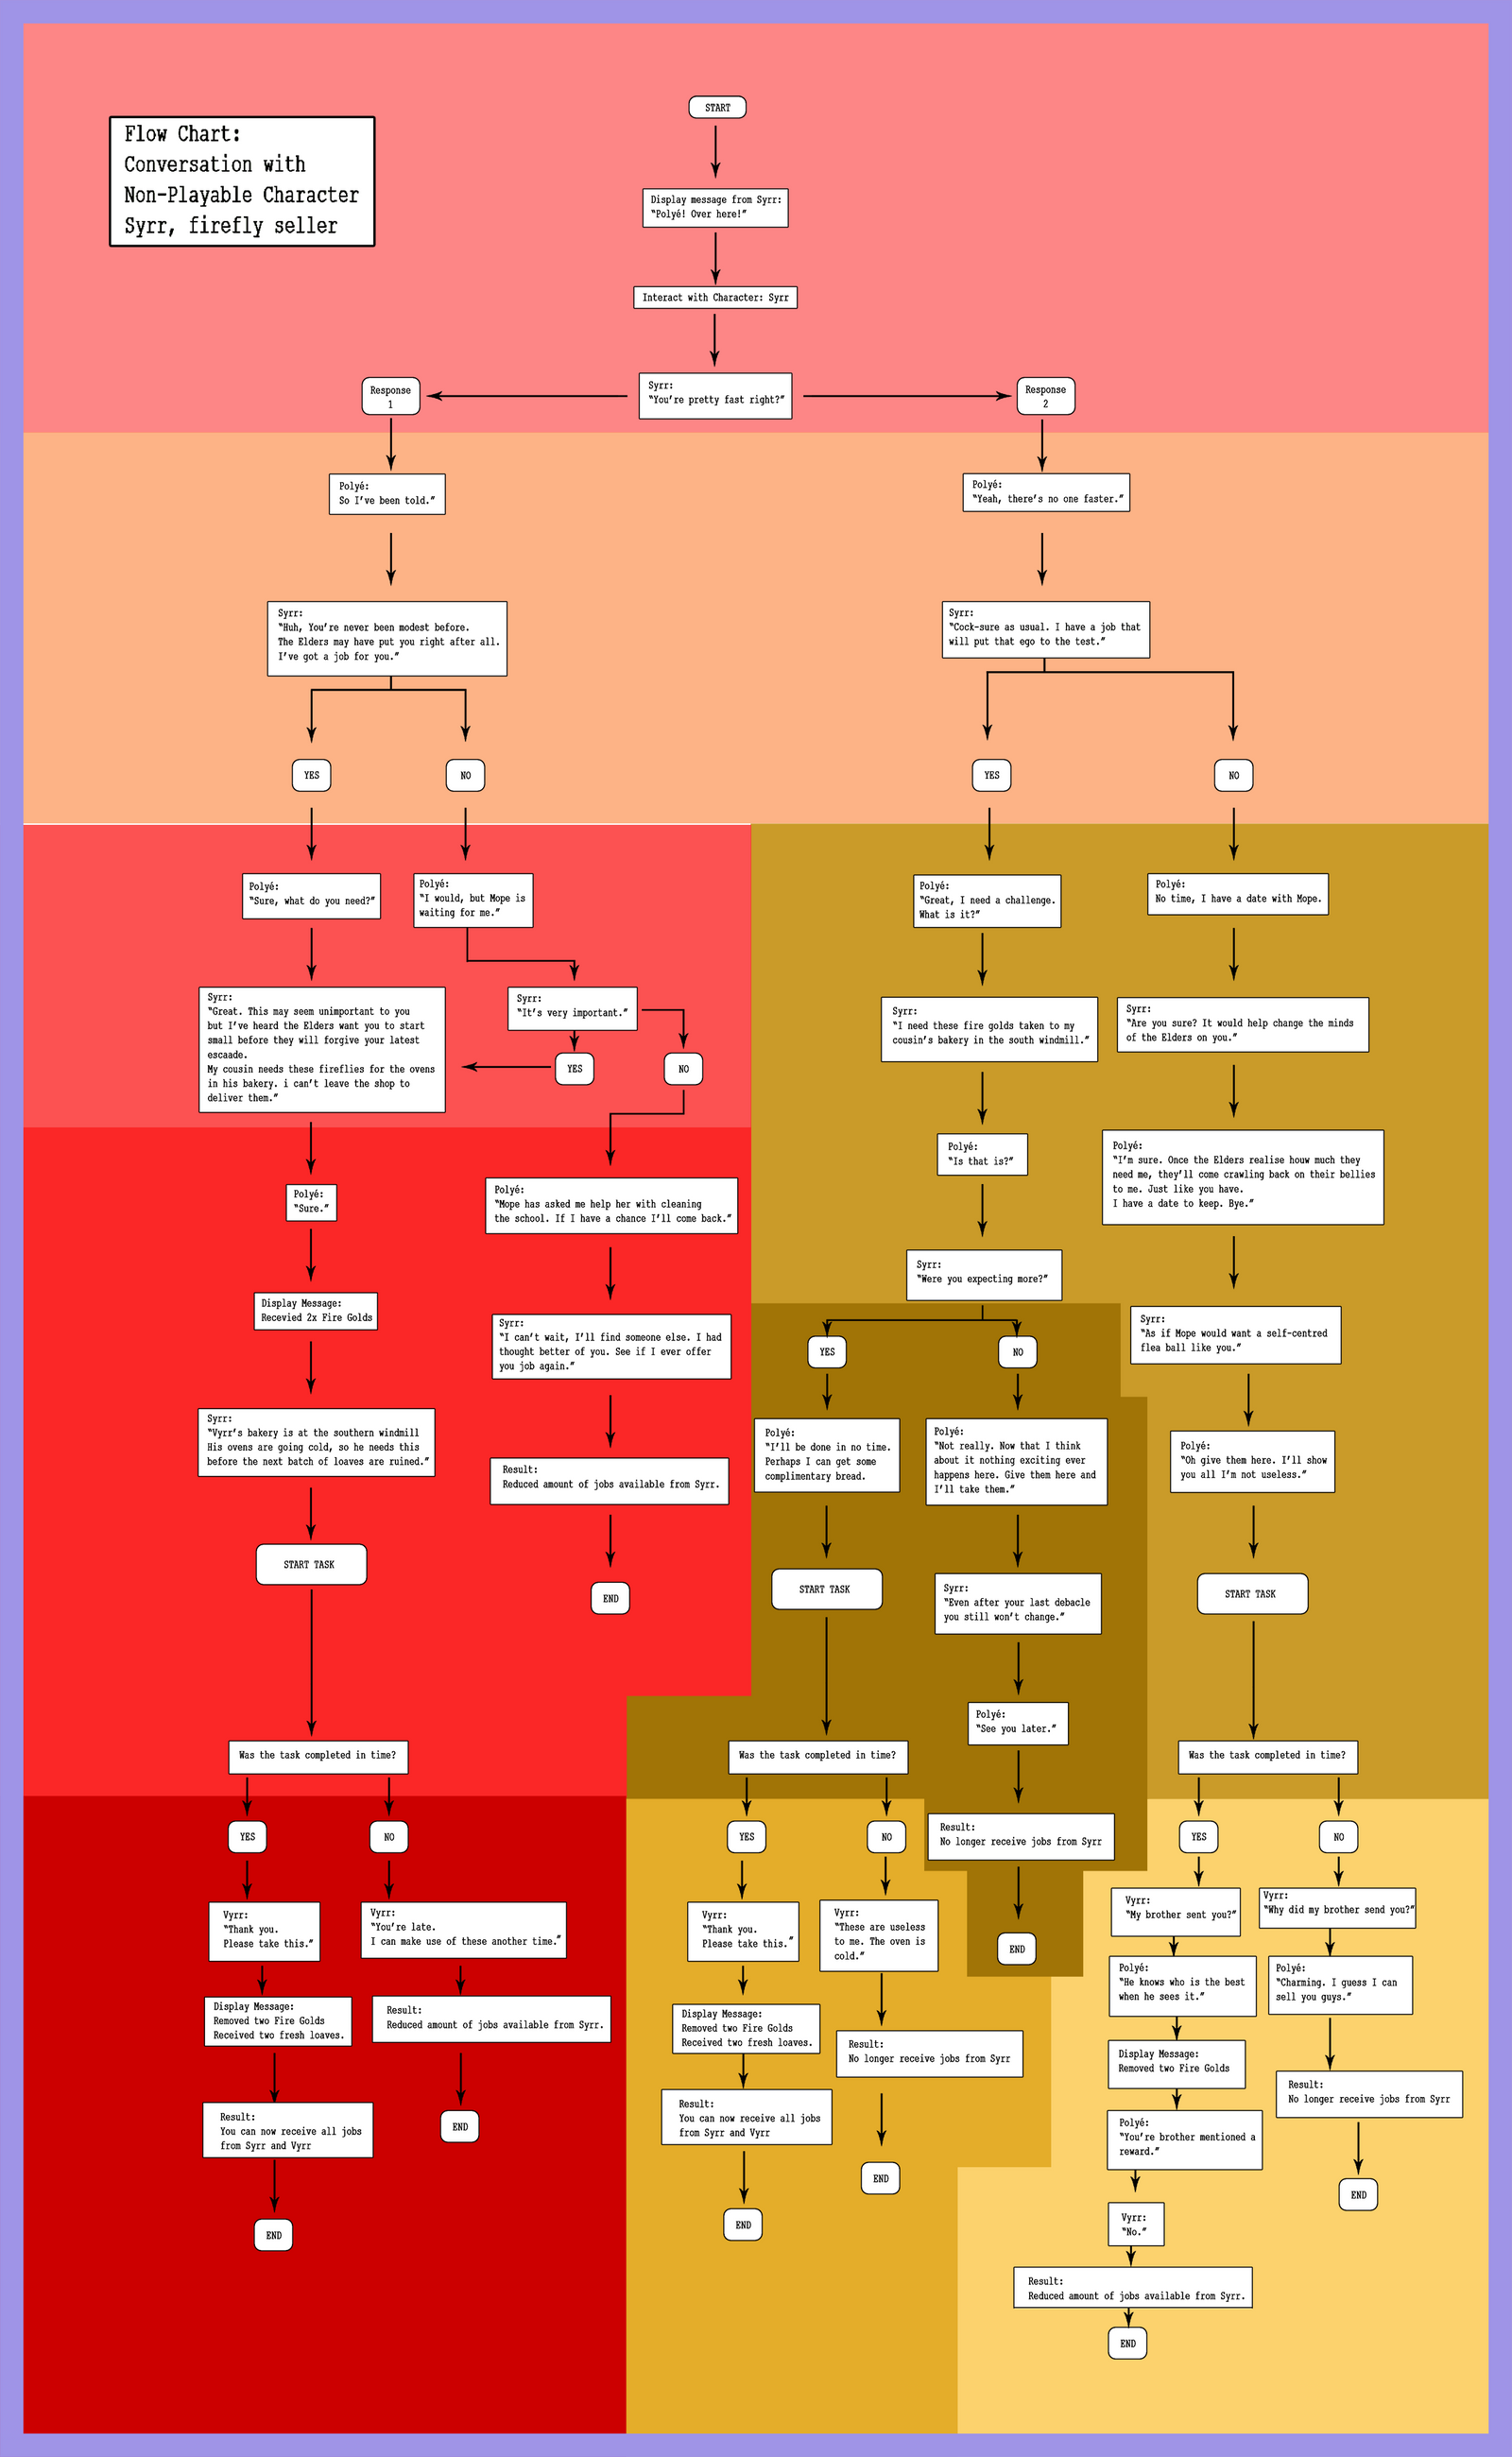 Rise side quest conversation flow chart by judan on deviantart rise side quest conversation flow chart by judan nvjuhfo Gallery